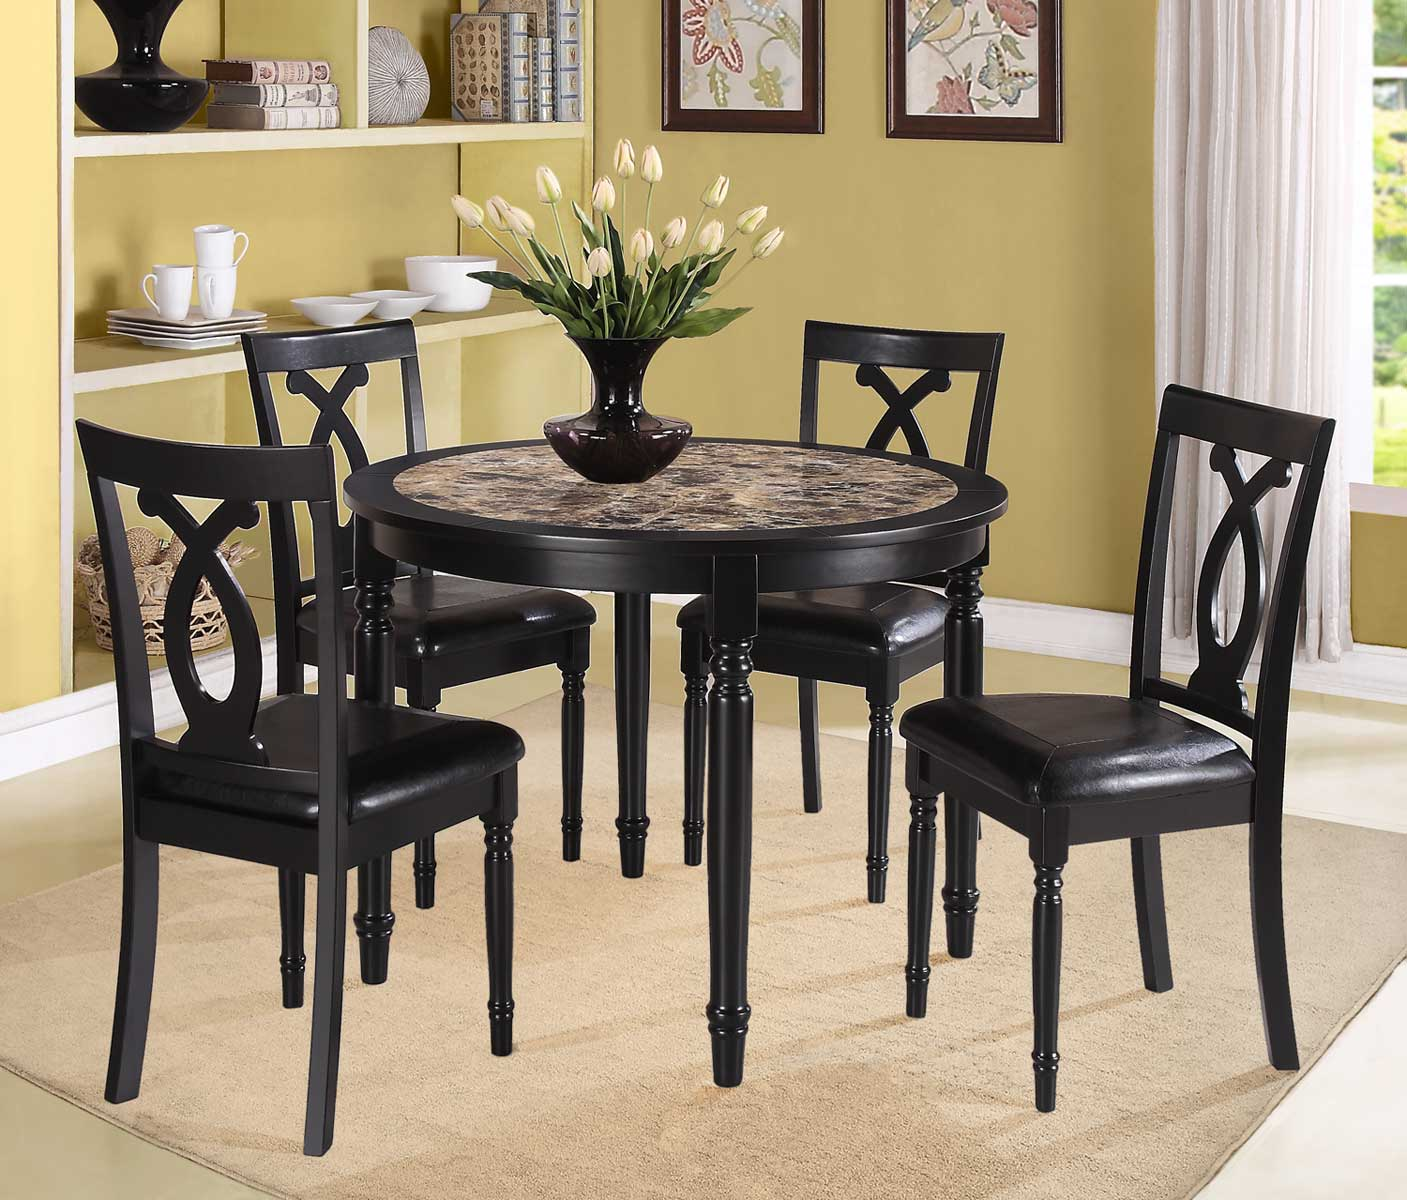 Homelegance Piper 5PC Round Dinette Set - Faux Marble 2566 |  Traveller Location